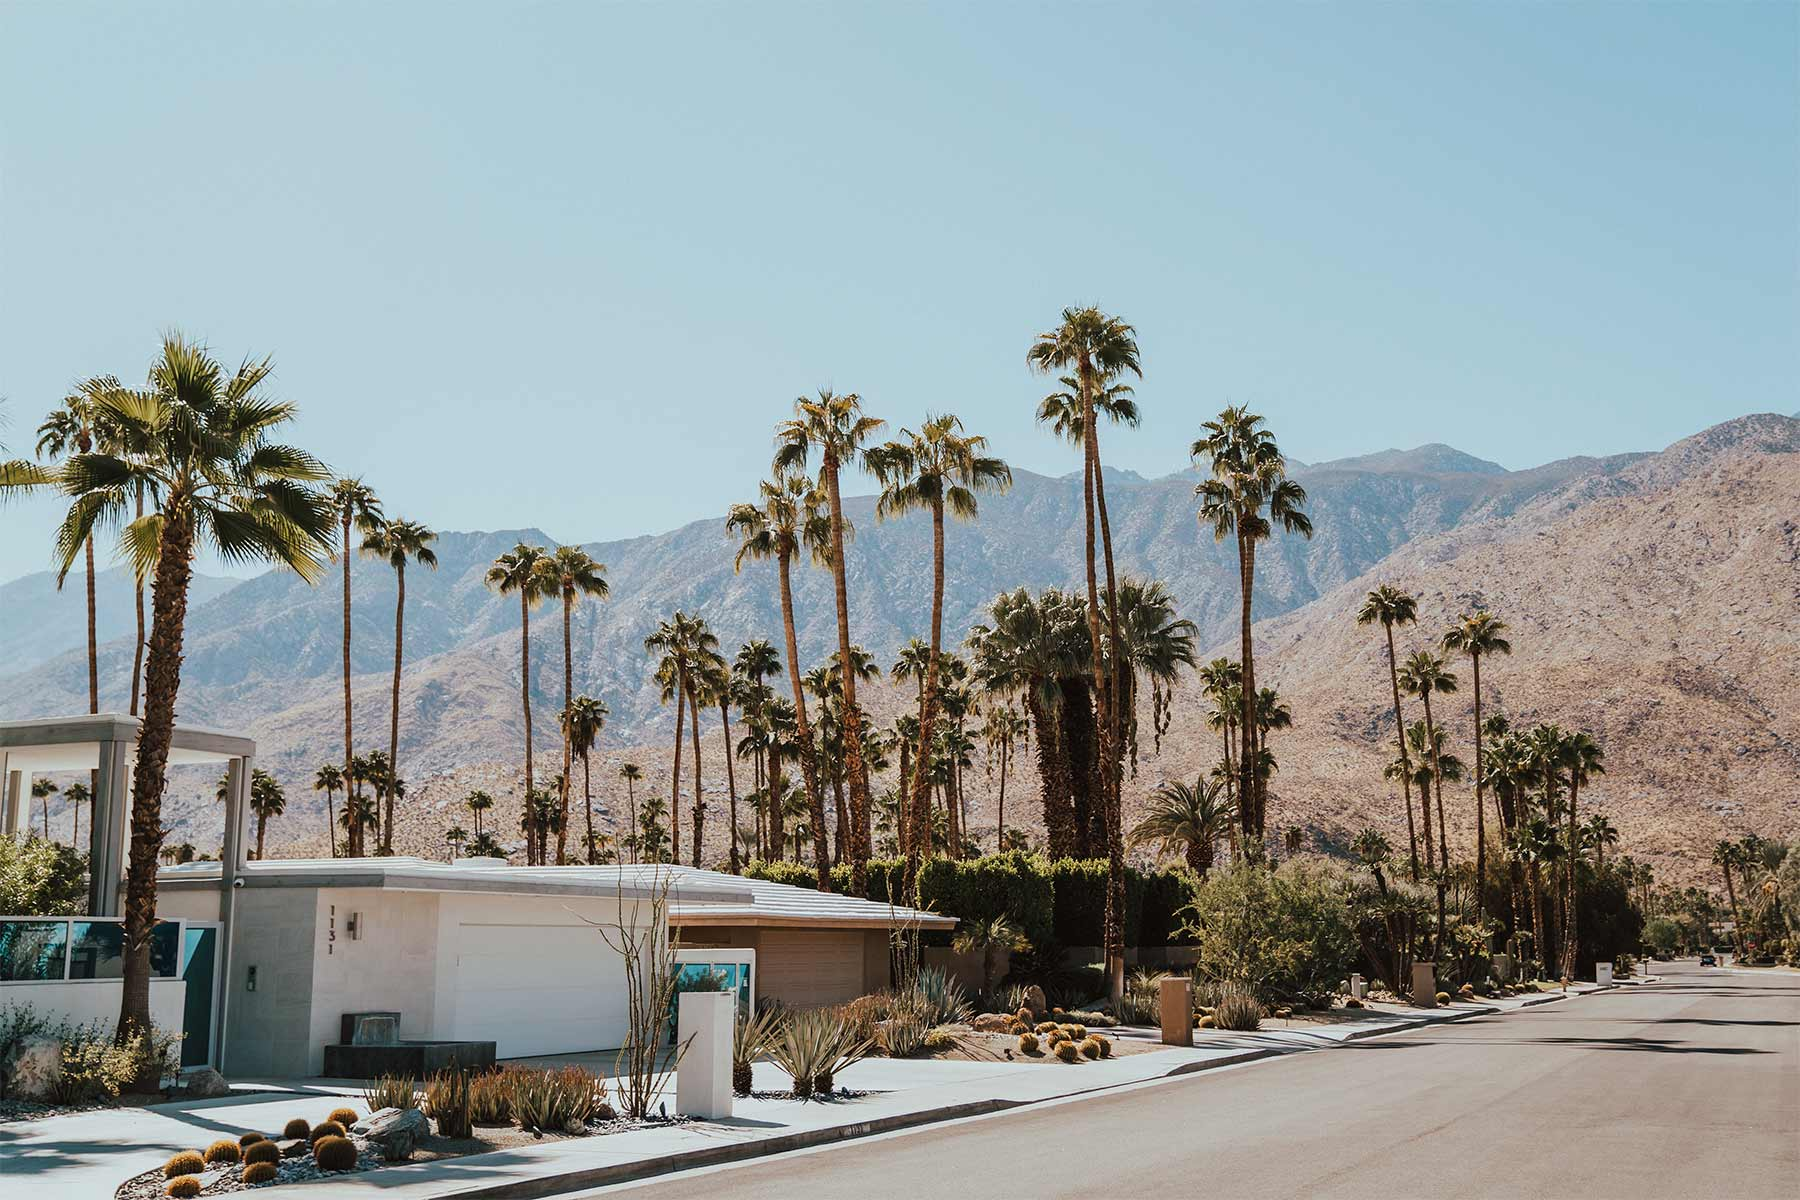 View of Palm Springs in California